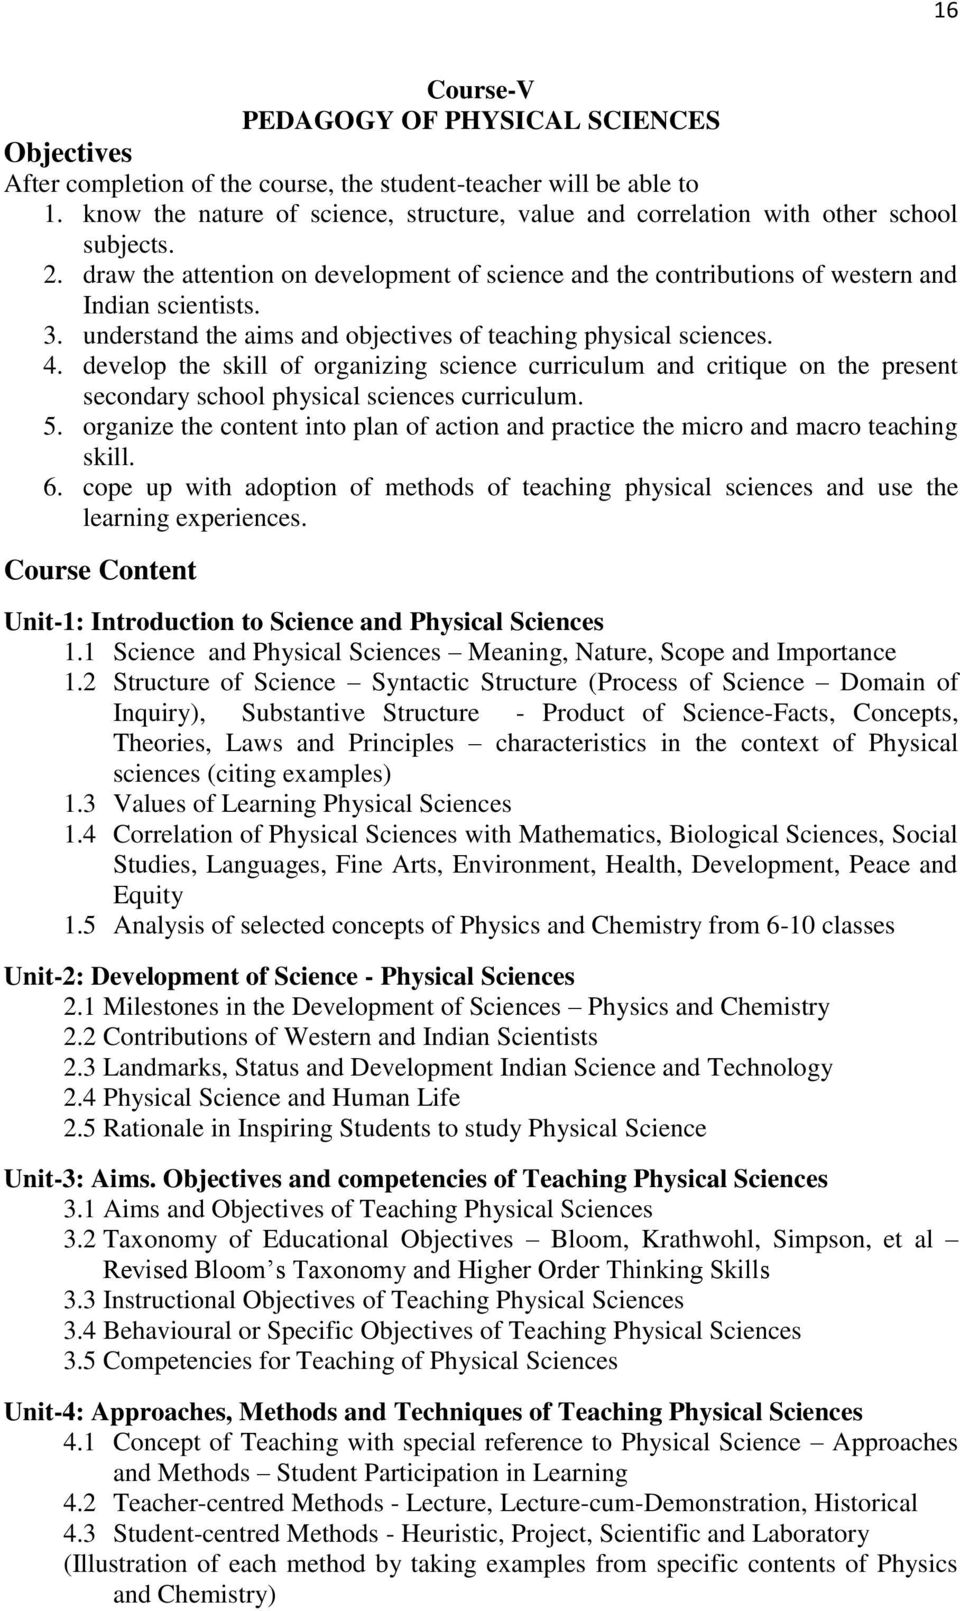 curriculum for two year secondary teacher education programme pdf understand the aims and objectives of teaching physical sciences 4 develop the skill of